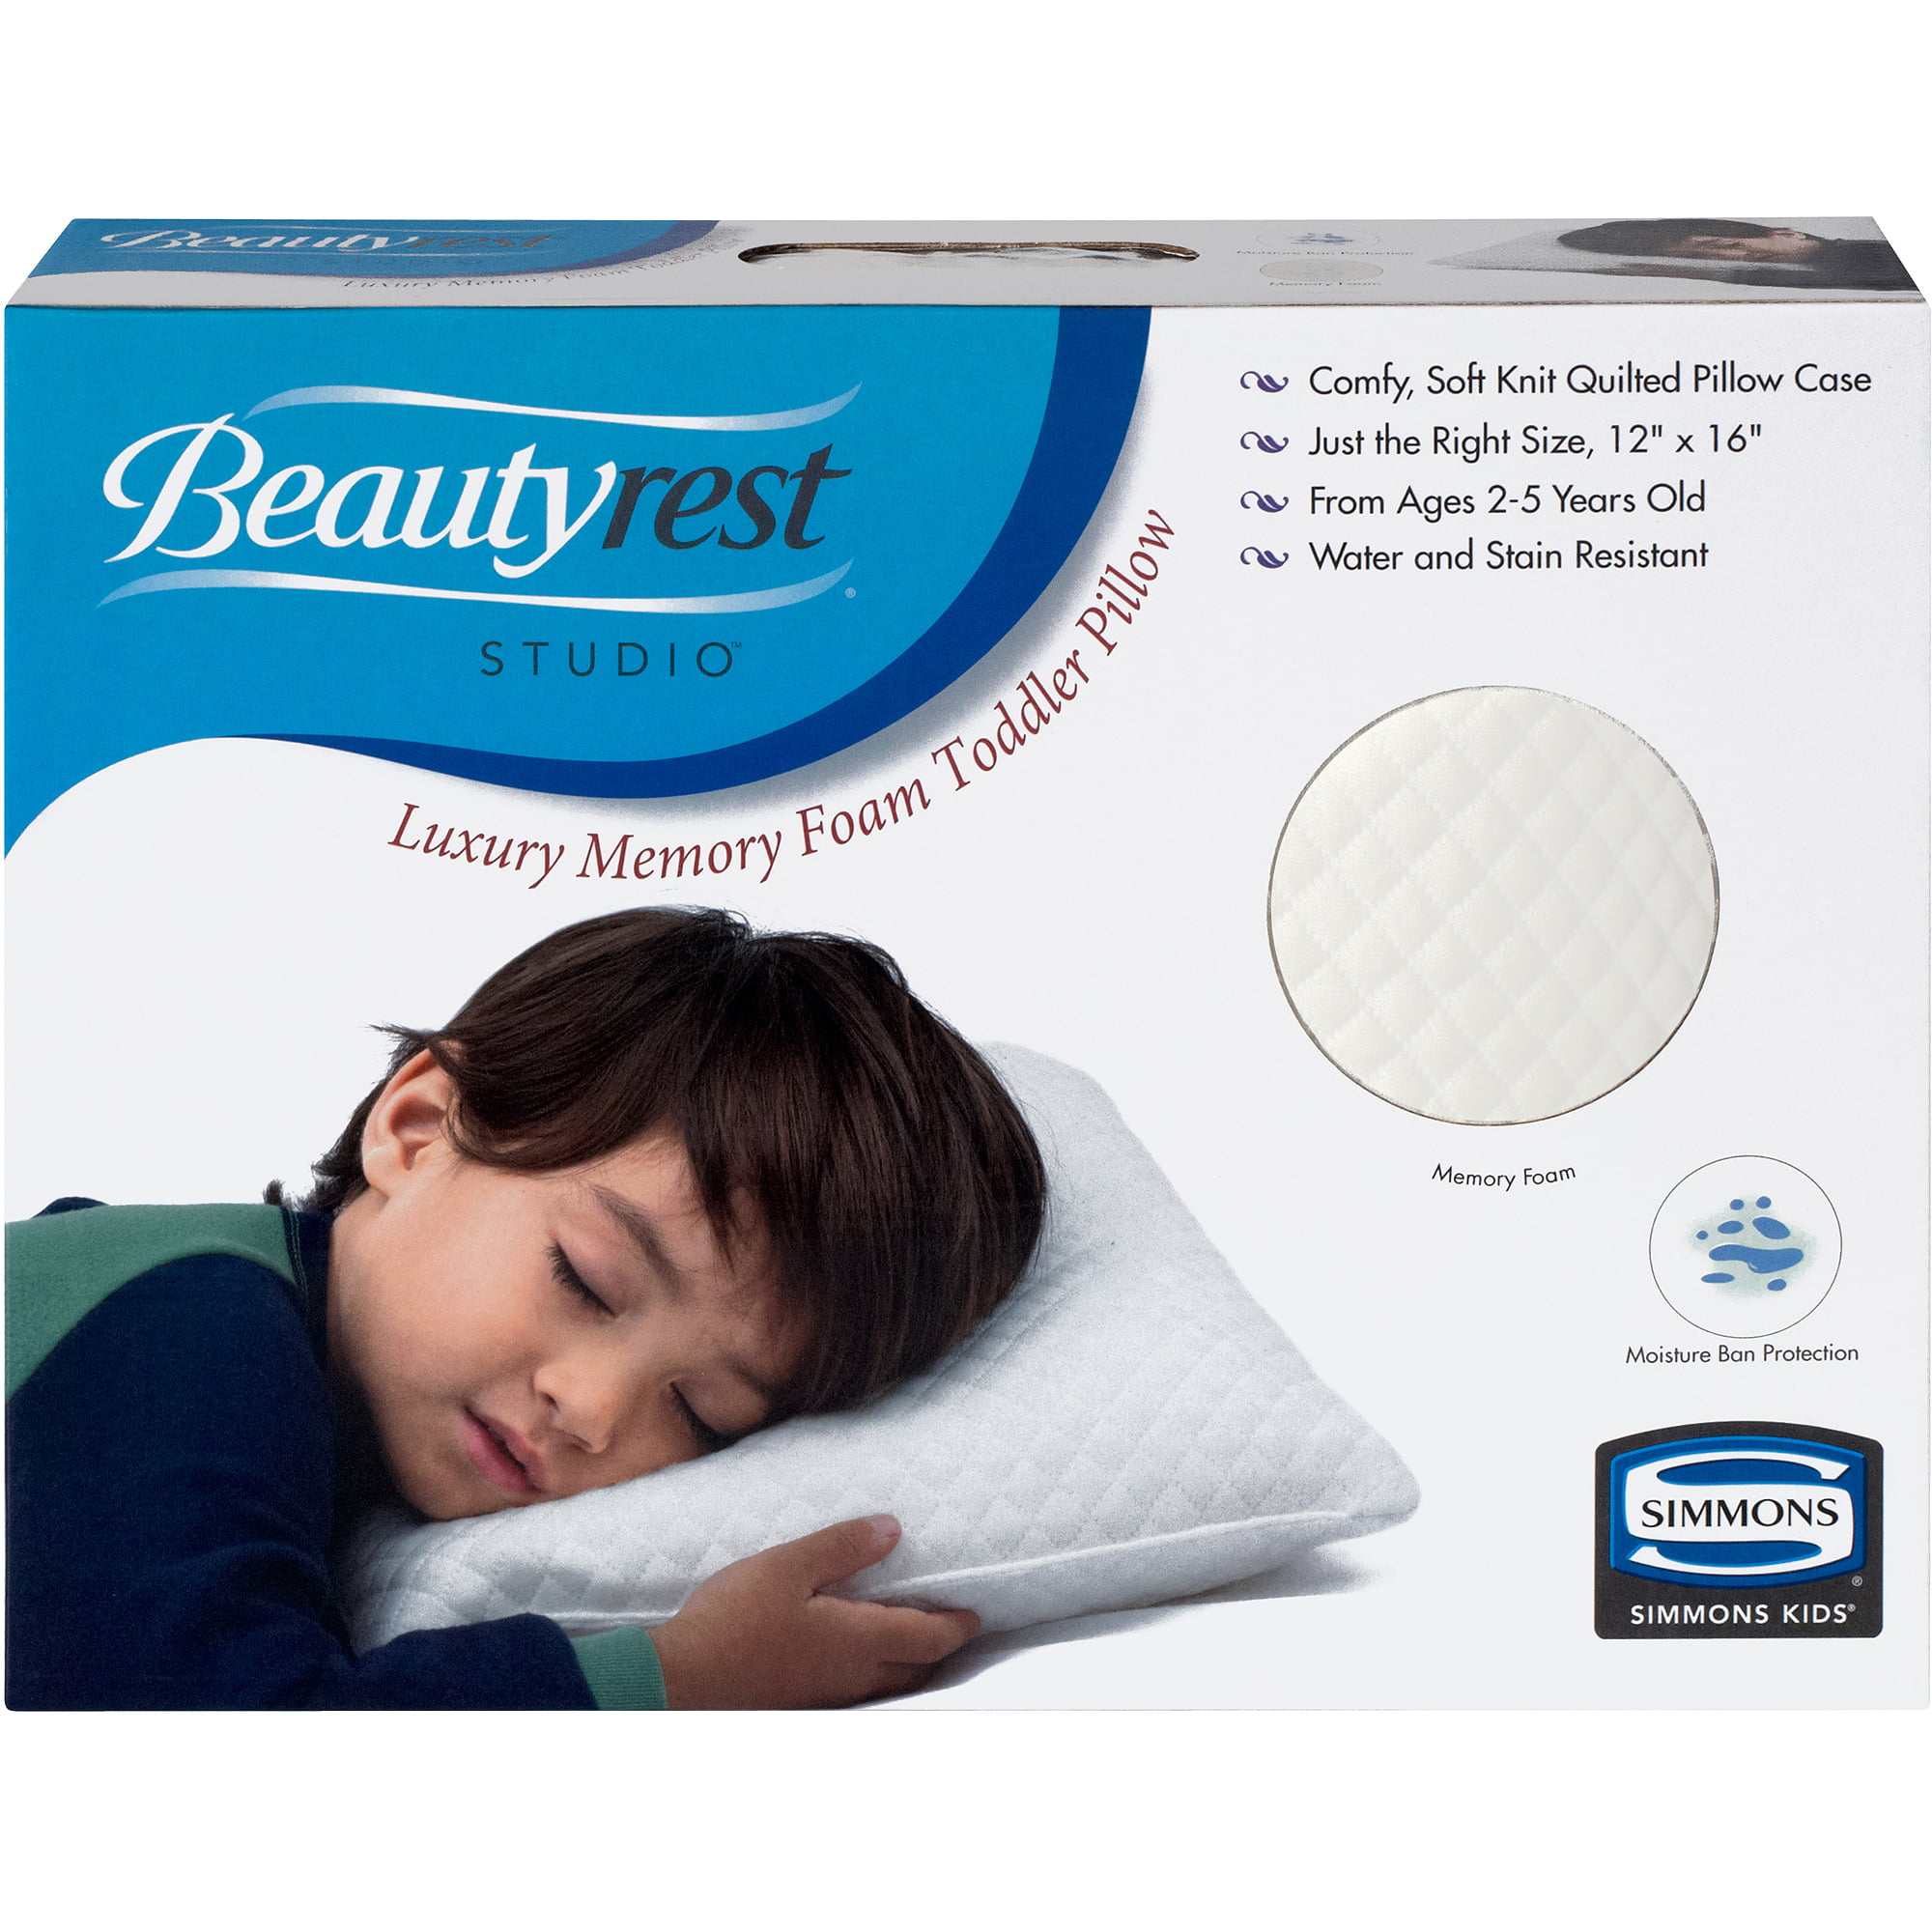 dealbeds silo simmons exposed foam gel beautyrest com memory inside aircool pillow